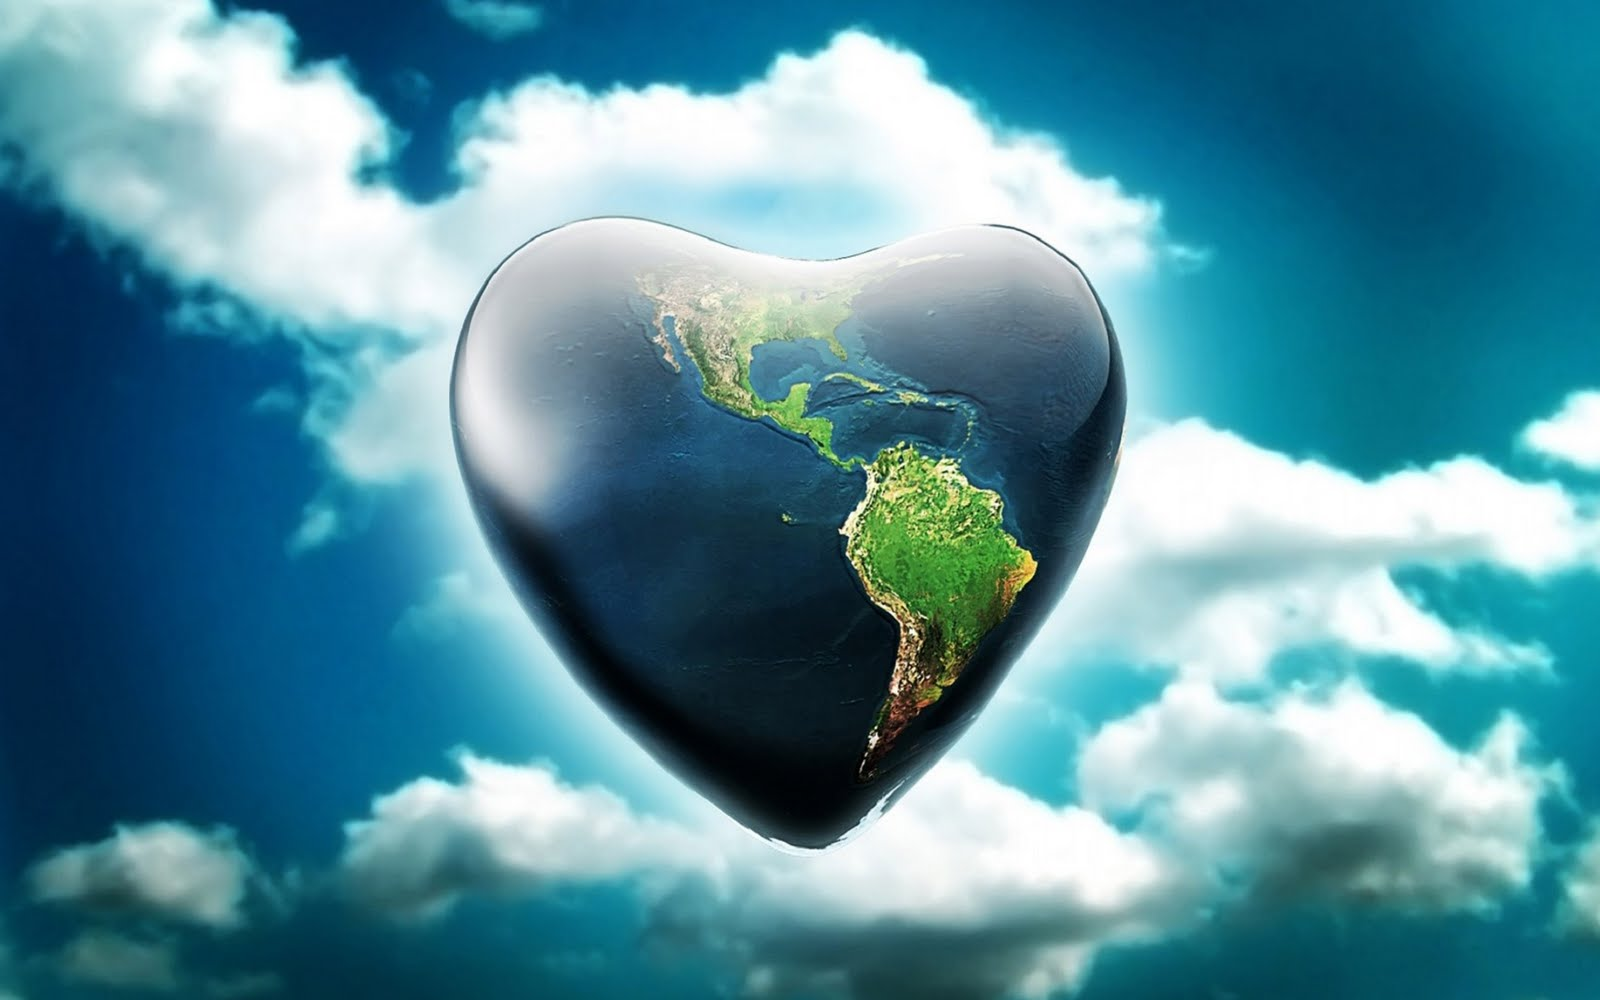 http://4.bp.blogspot.com/_Ym3du2sG3R4/S68nN053EgI/AAAAAAAAB0k/DSzyizQmCGM/s1600/3D-Heart-of-World-wallpaper.jpg